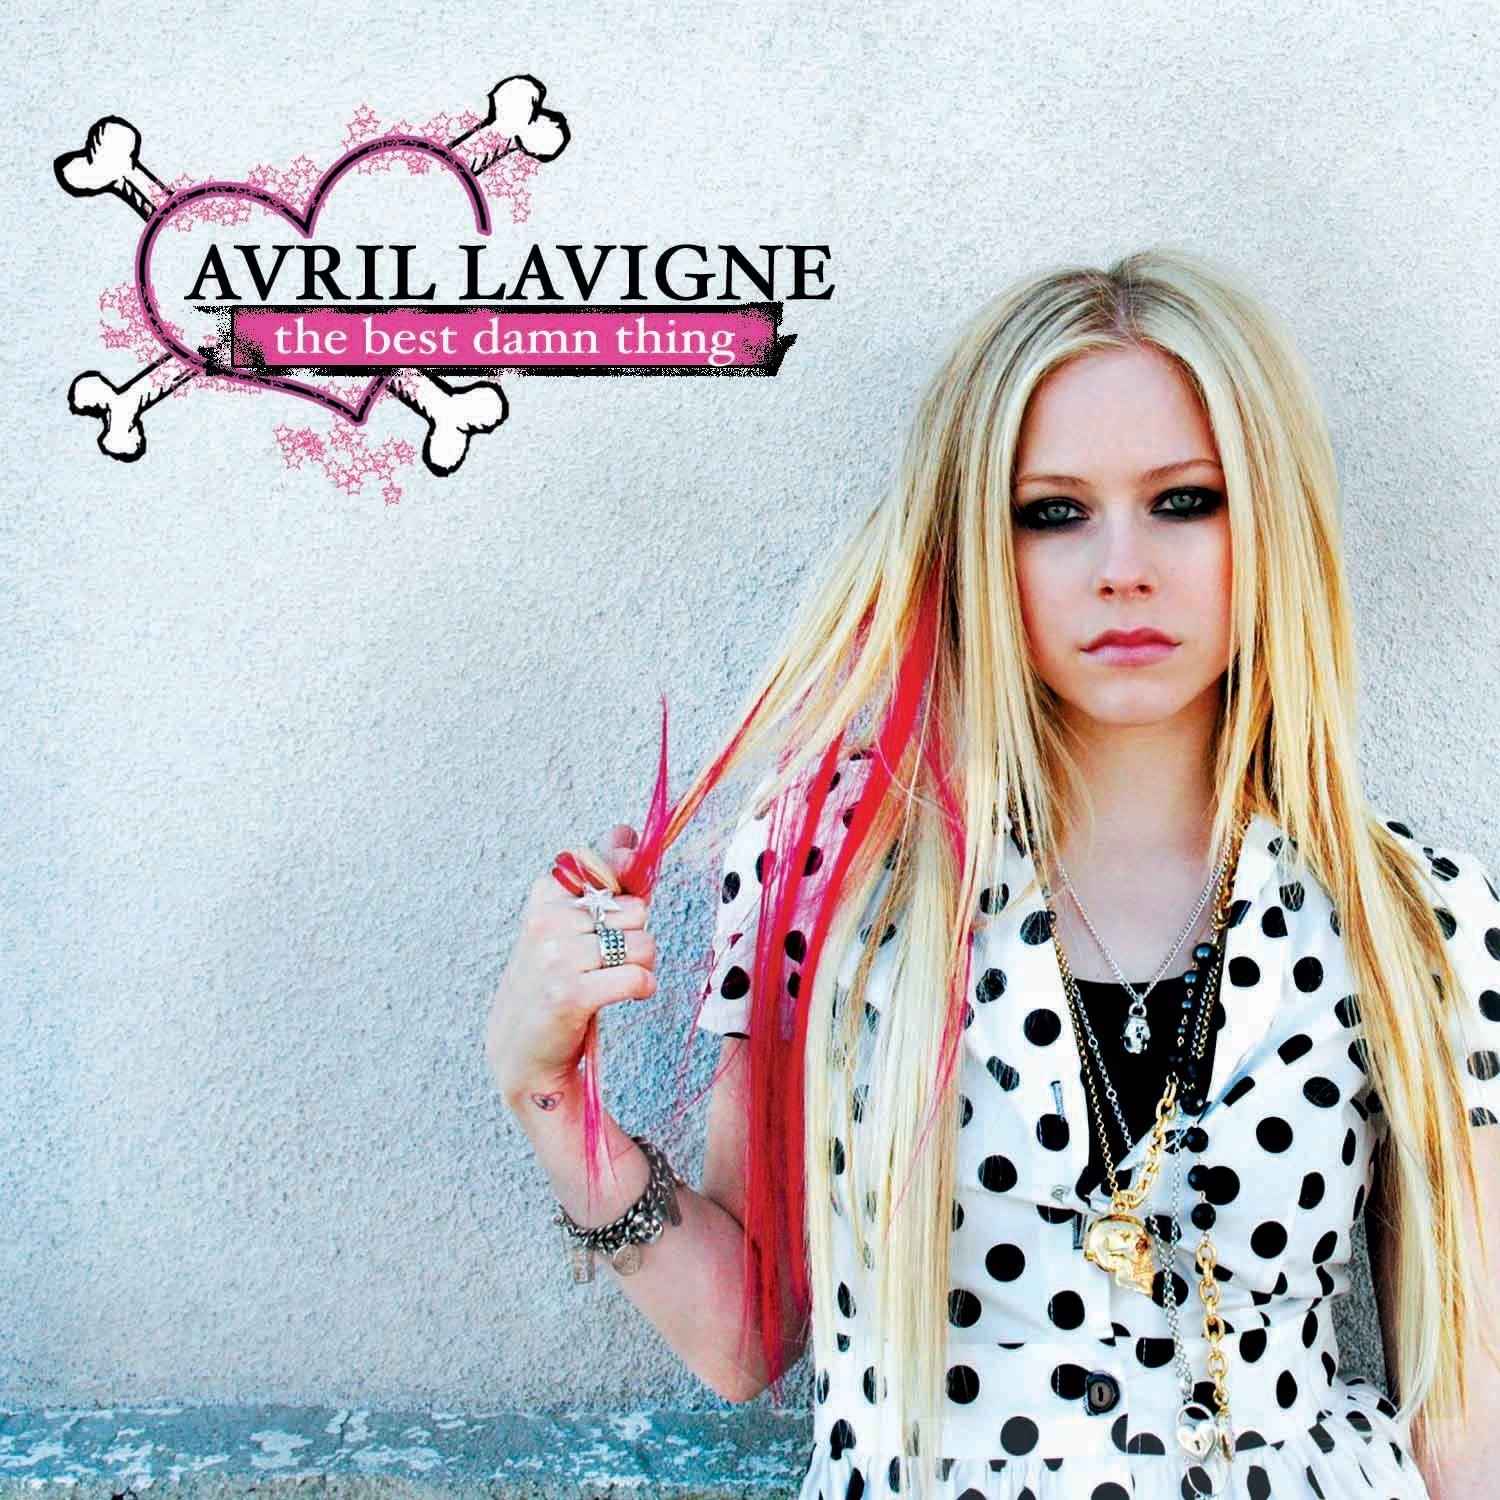 Avril Lavigne - The Best Damn Thing album cover